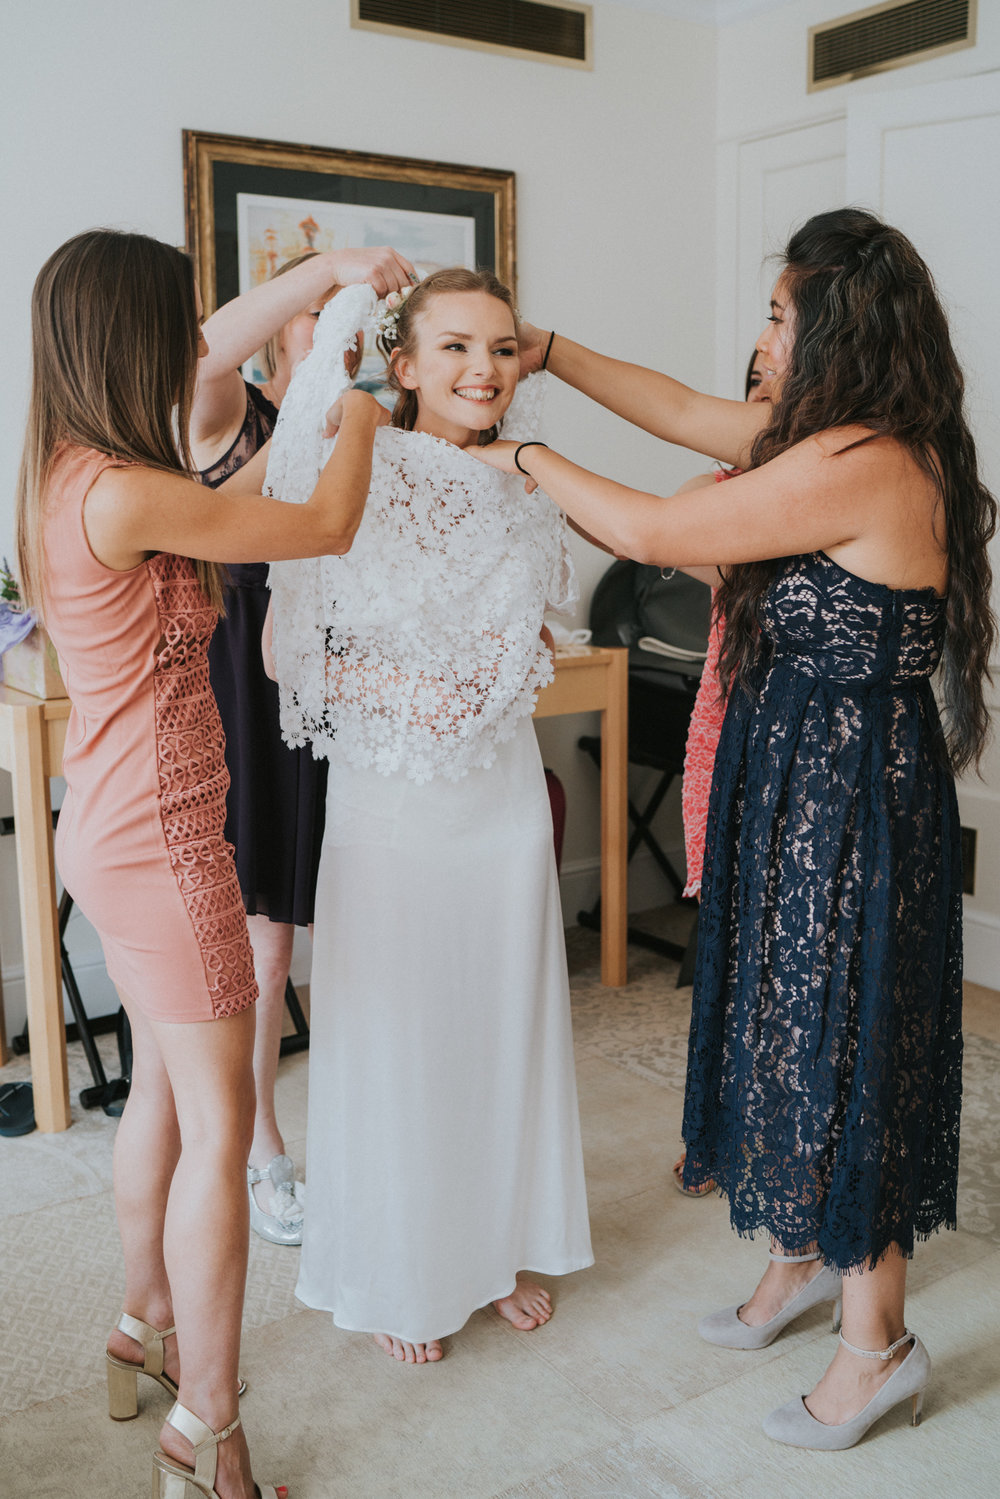 Grace-Elizabeth-Georgie-Amalaketu-Firstsite-Colchester-Essex-Boho-Buddhist-Wedding-Alternative-Wedding-Photography-Essex (24 of 100).jpg